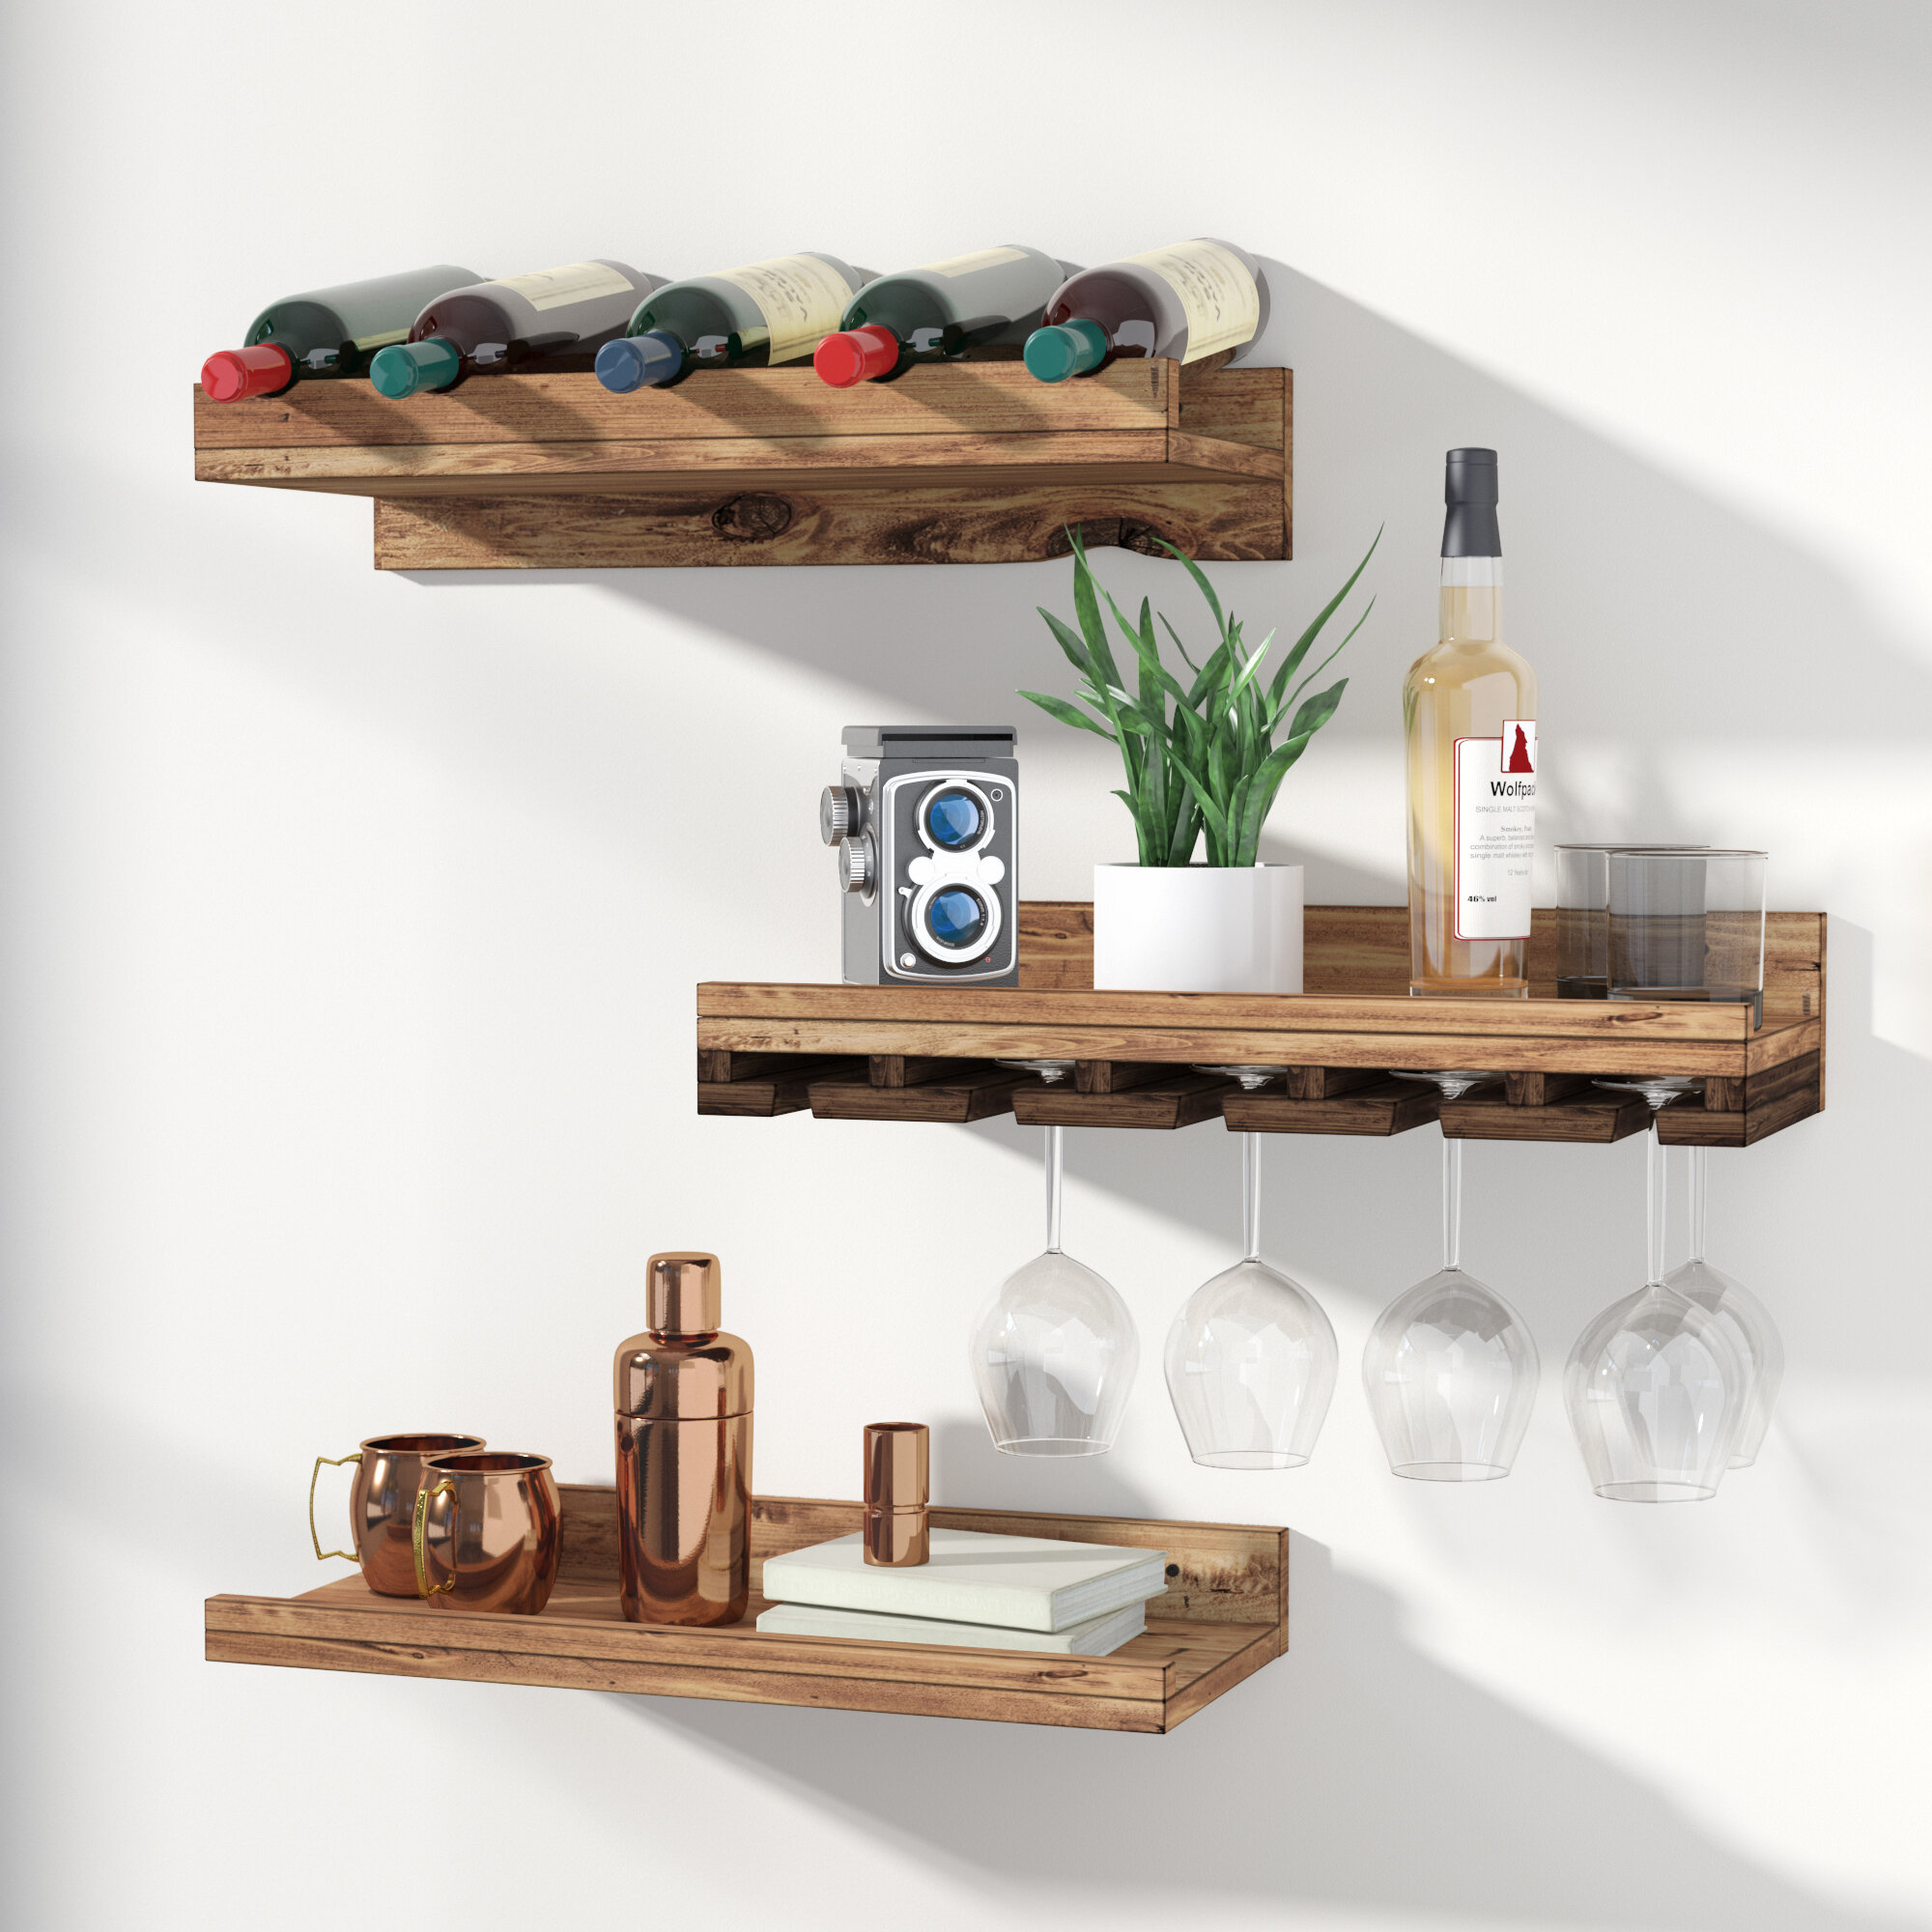 Union rustic dunlap 5 bottle wall mounted 3 piece wine bottle rack union rustic dunlap 5 bottle wall mounted 3 piece wine bottle rack reviews wayfair reviewsmspy